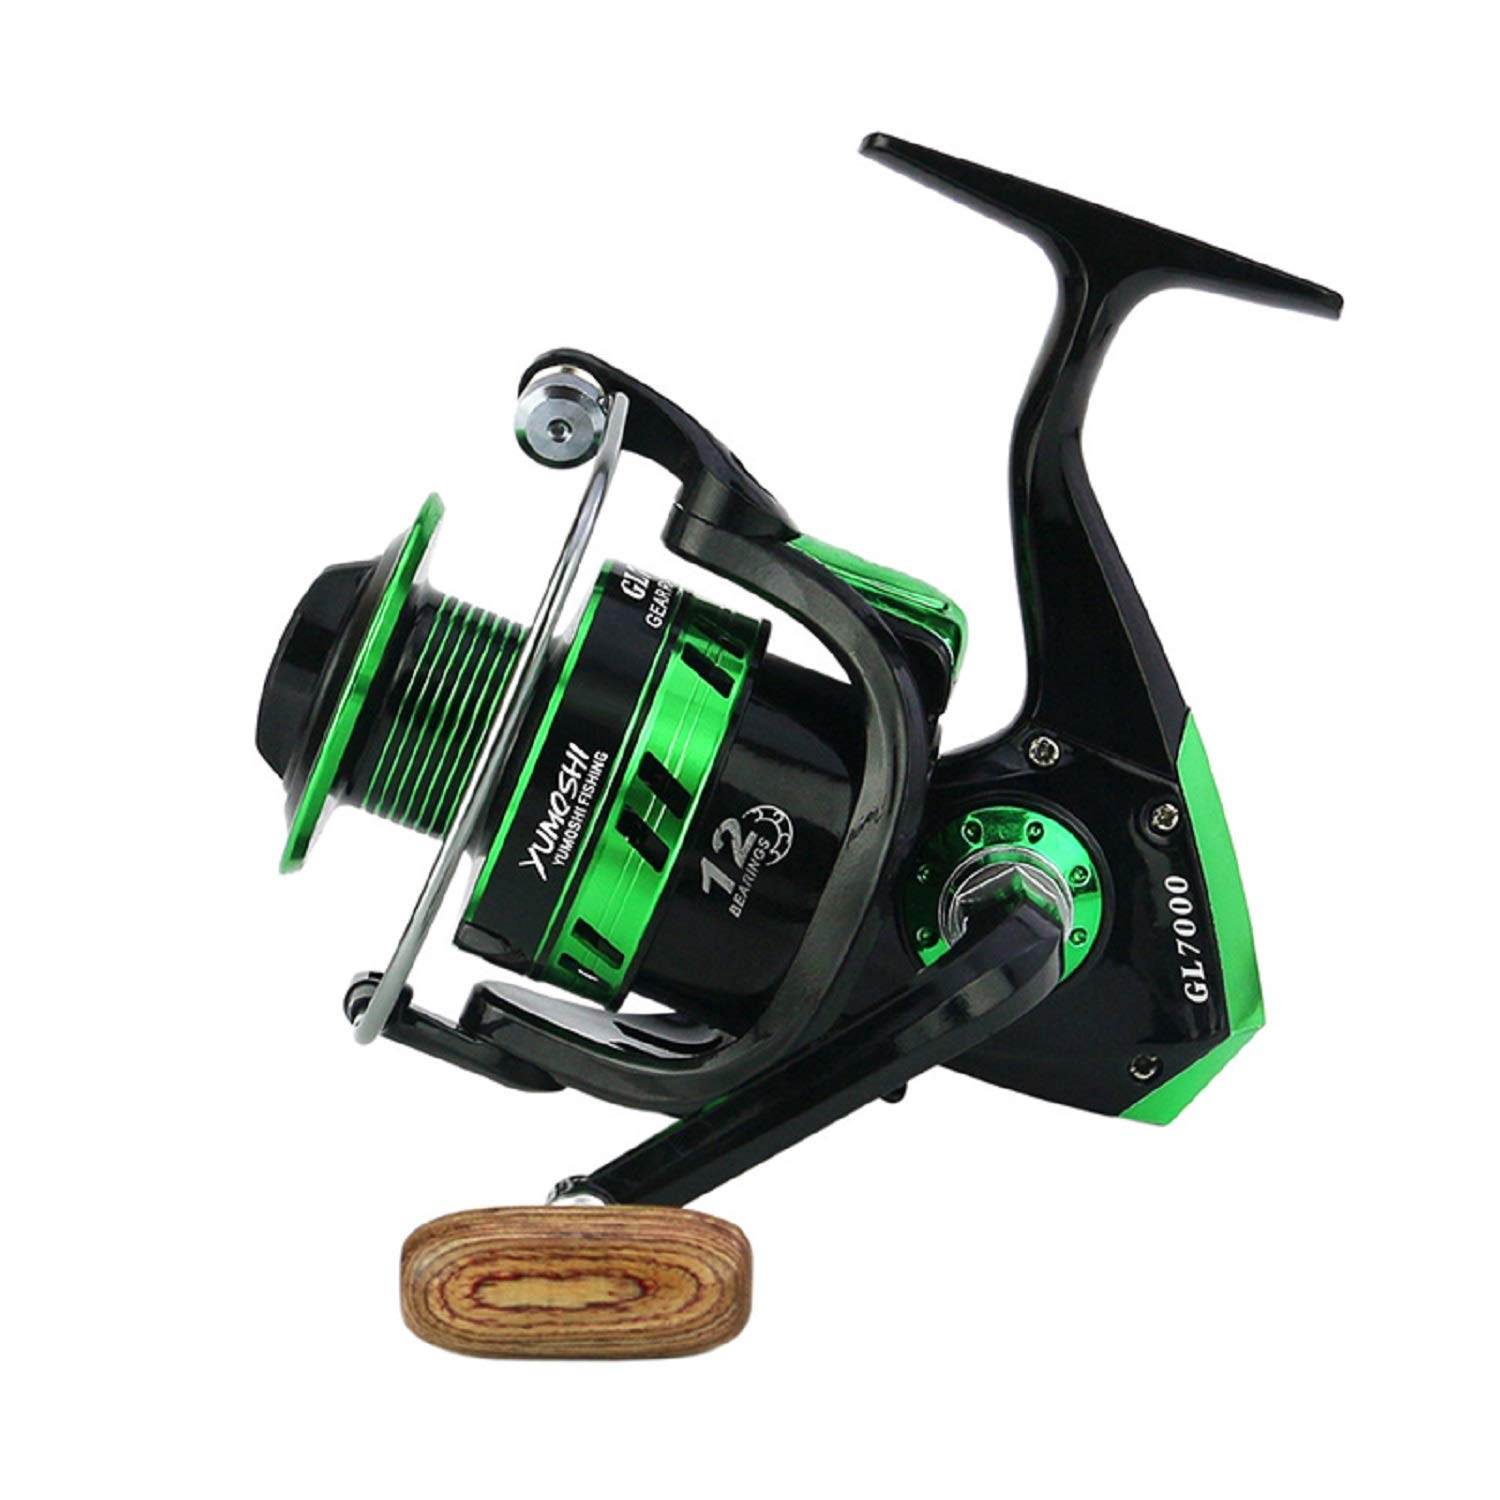 Sanhezhong Fishing Reel, 5.5 1 Speed,12BB Light Weight Ultra Smooth Aluminum Spinning Fishing Reel Available in Sizes 2000,4000,5000,7000